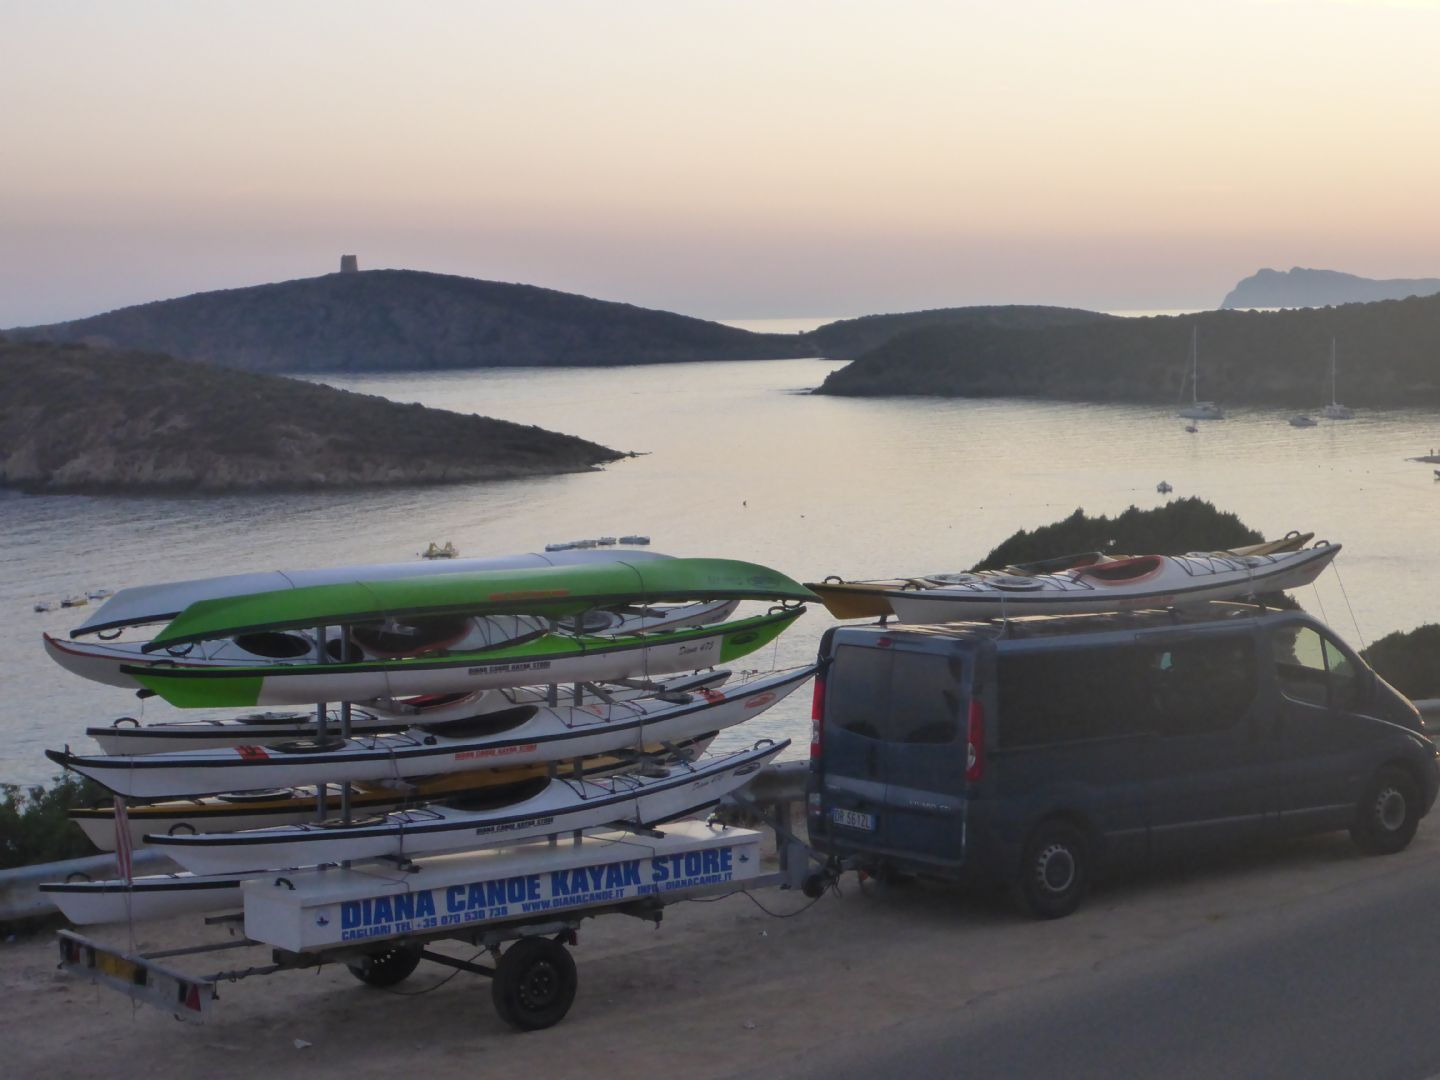 P1020144.JPG - Sardinia - Southern Sea Kayaking - Kayaking